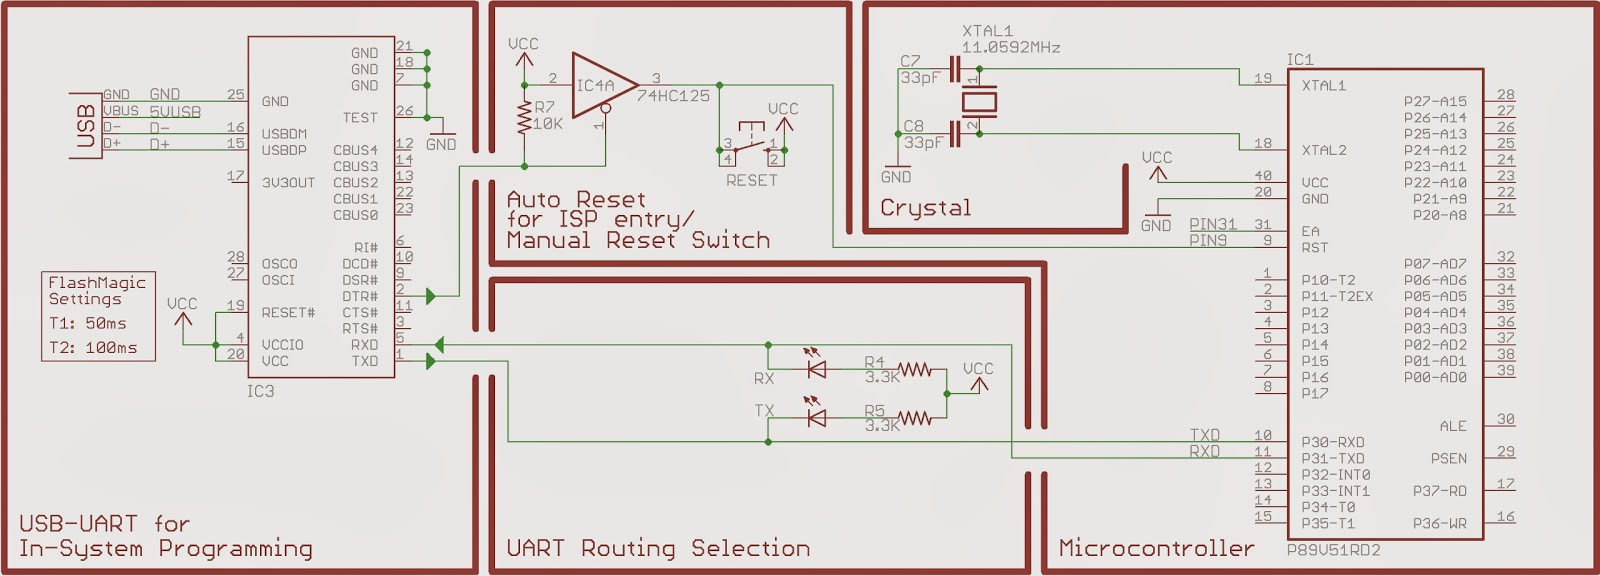 Schematic electronics faq november 2013 TP-LINK Router at crackthecode.co